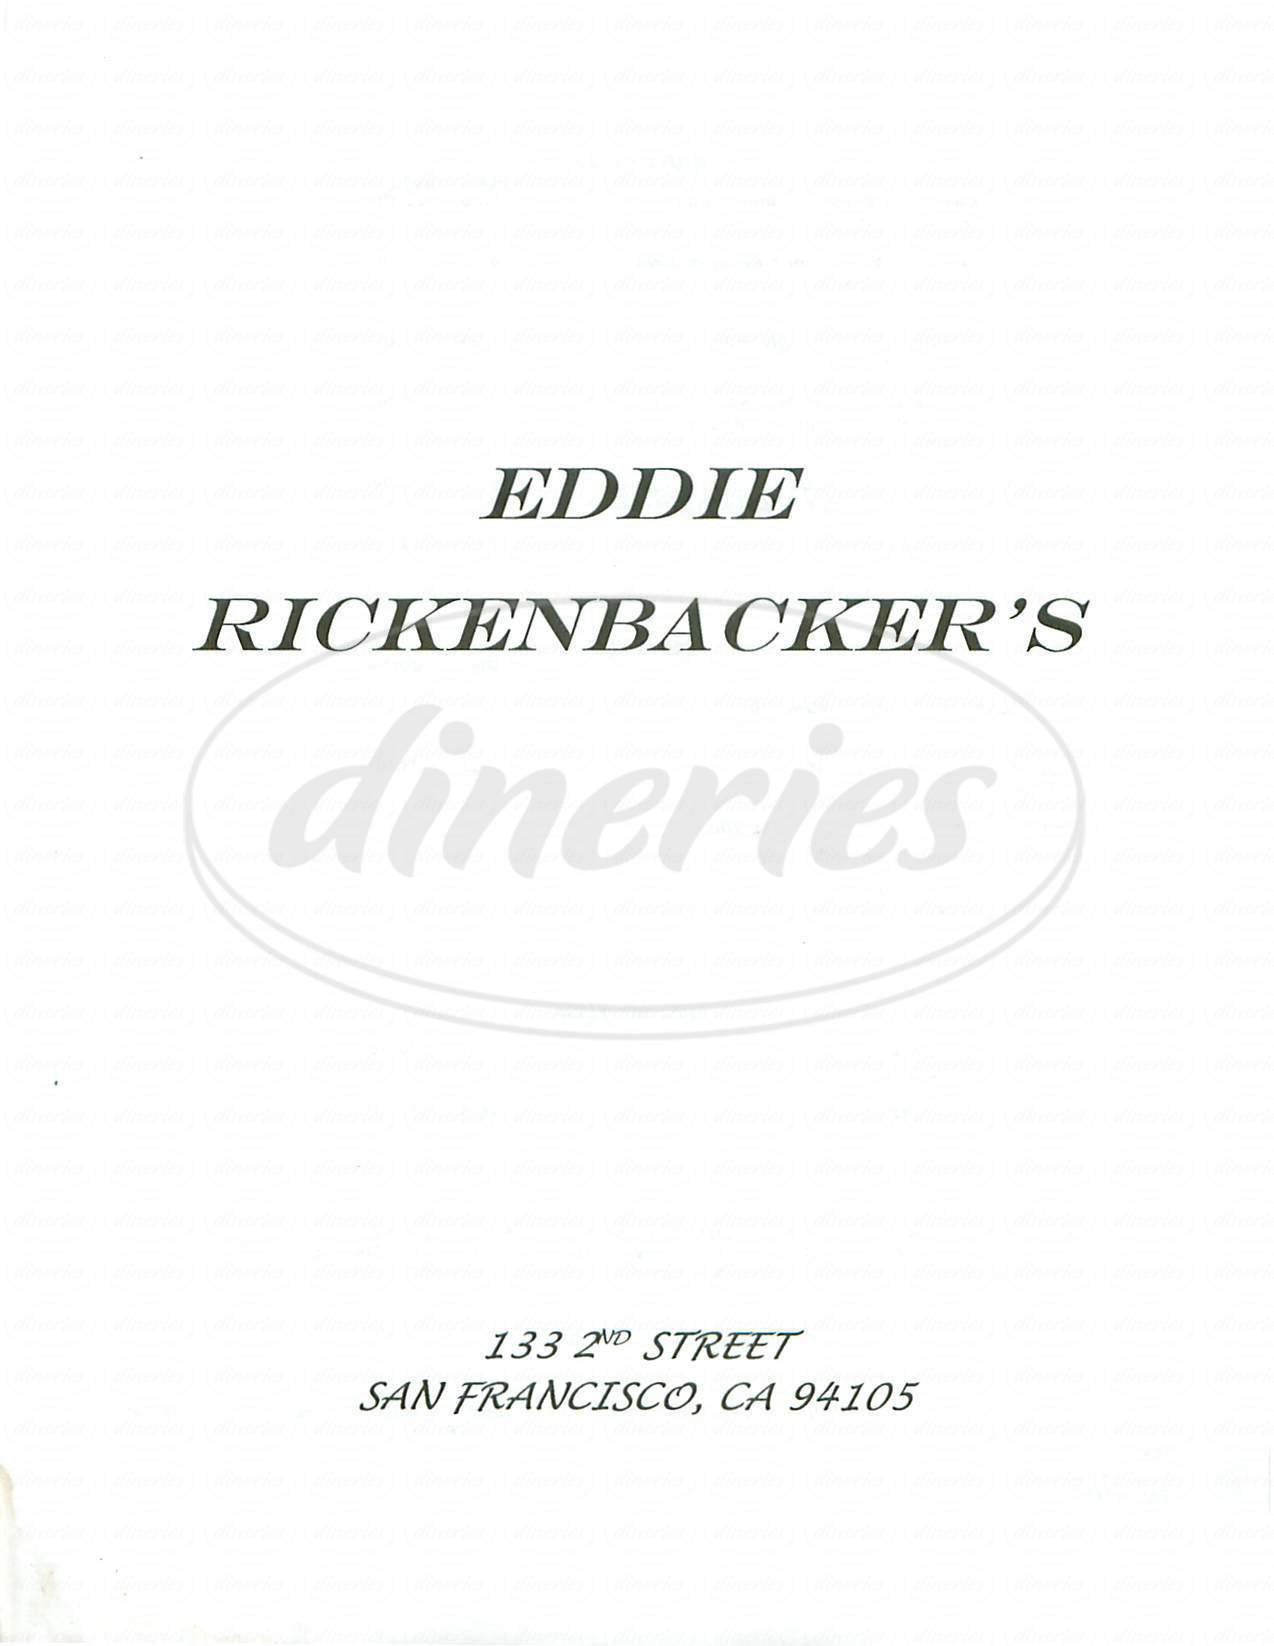 menu for Eddie Rickenbacker's